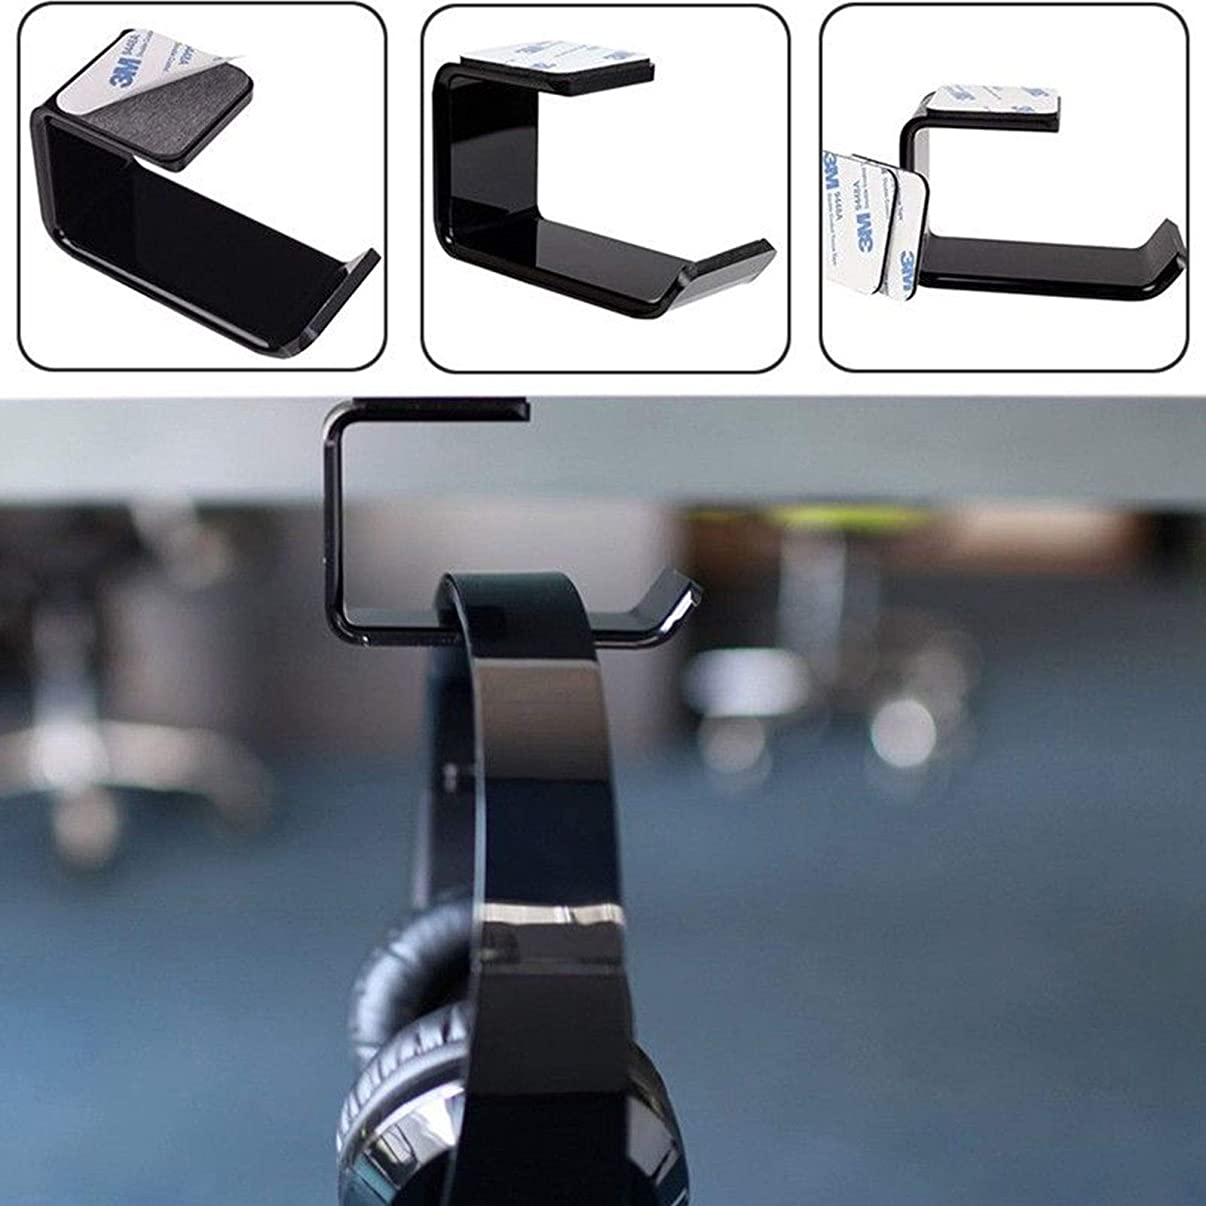 Headphone Stand Hanger with Tape,Headset Display Bracket Mount Holder Under Desk or Hook Wall Table (Black)